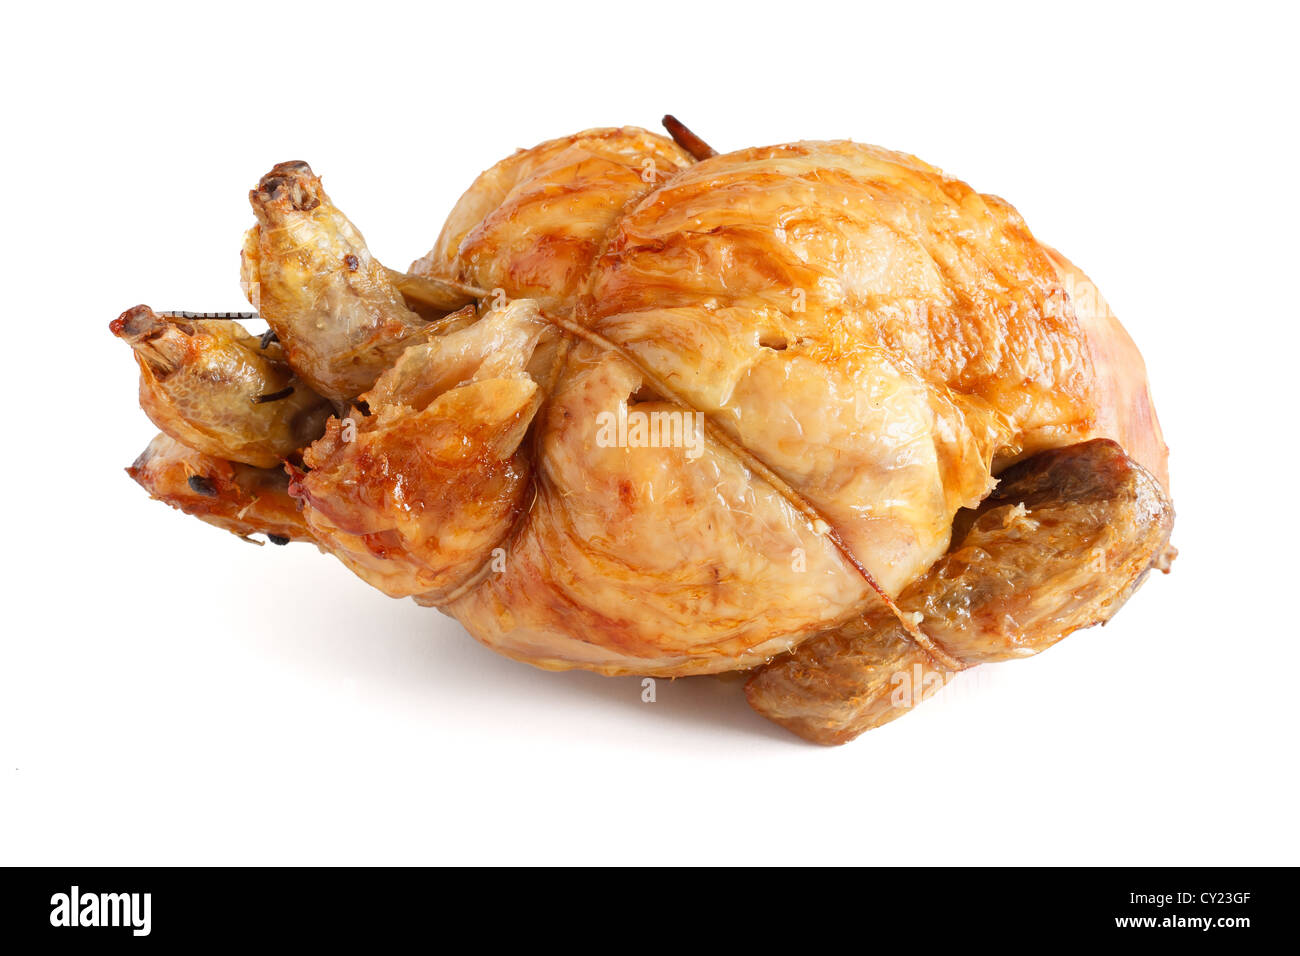 whole roasted chicken over white background - Stock Image